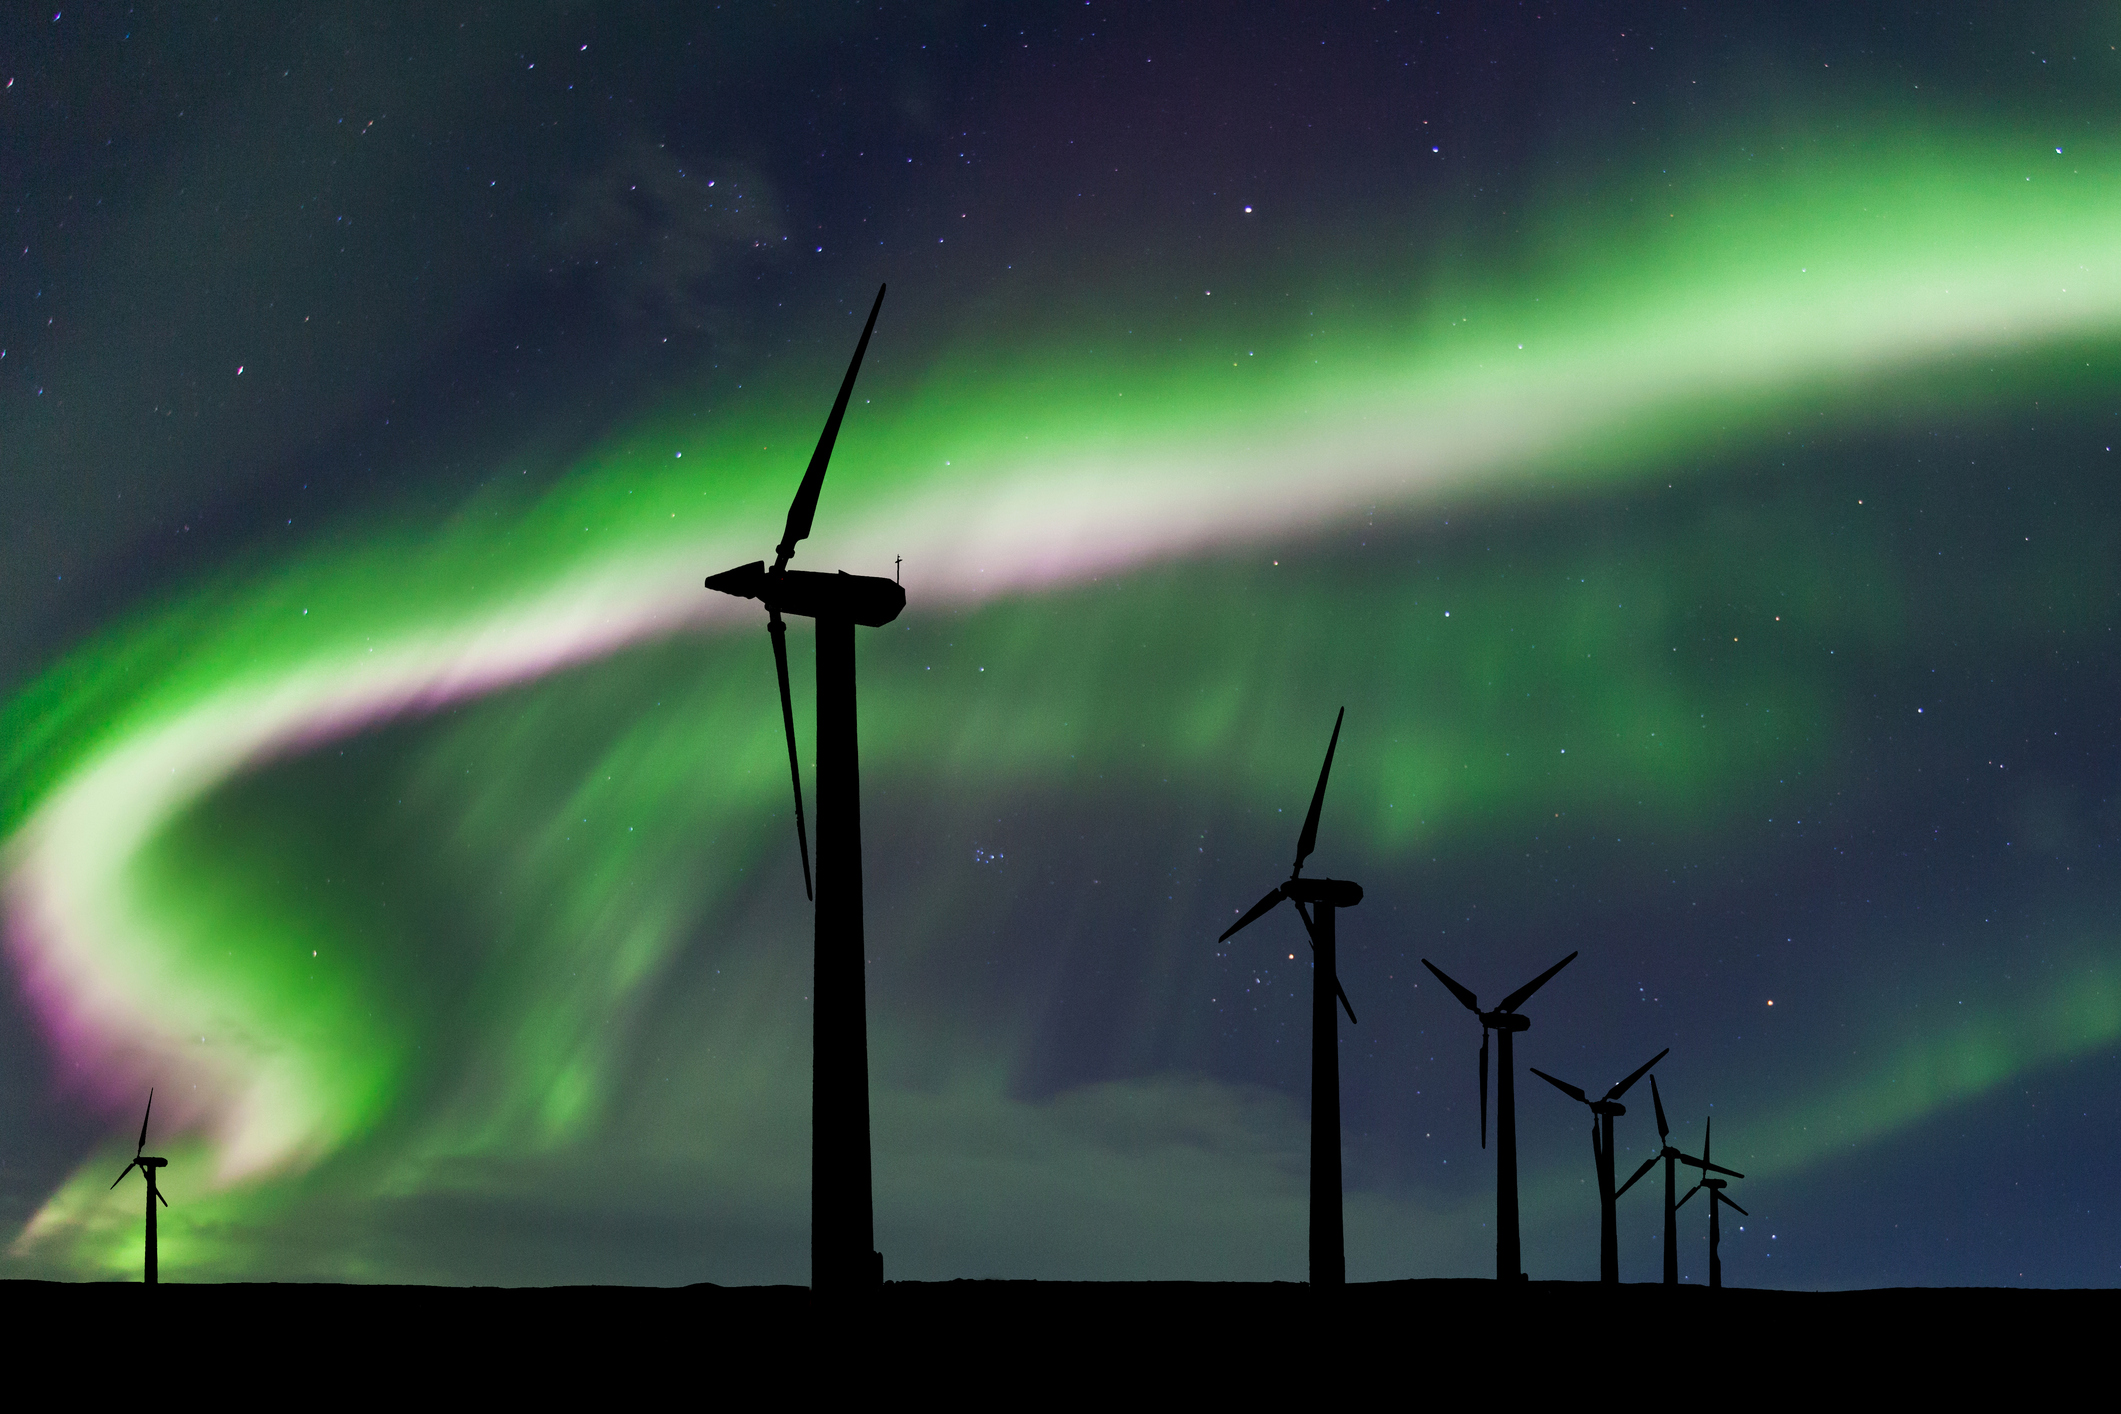 Wind turbines on the background of the Northern Lights